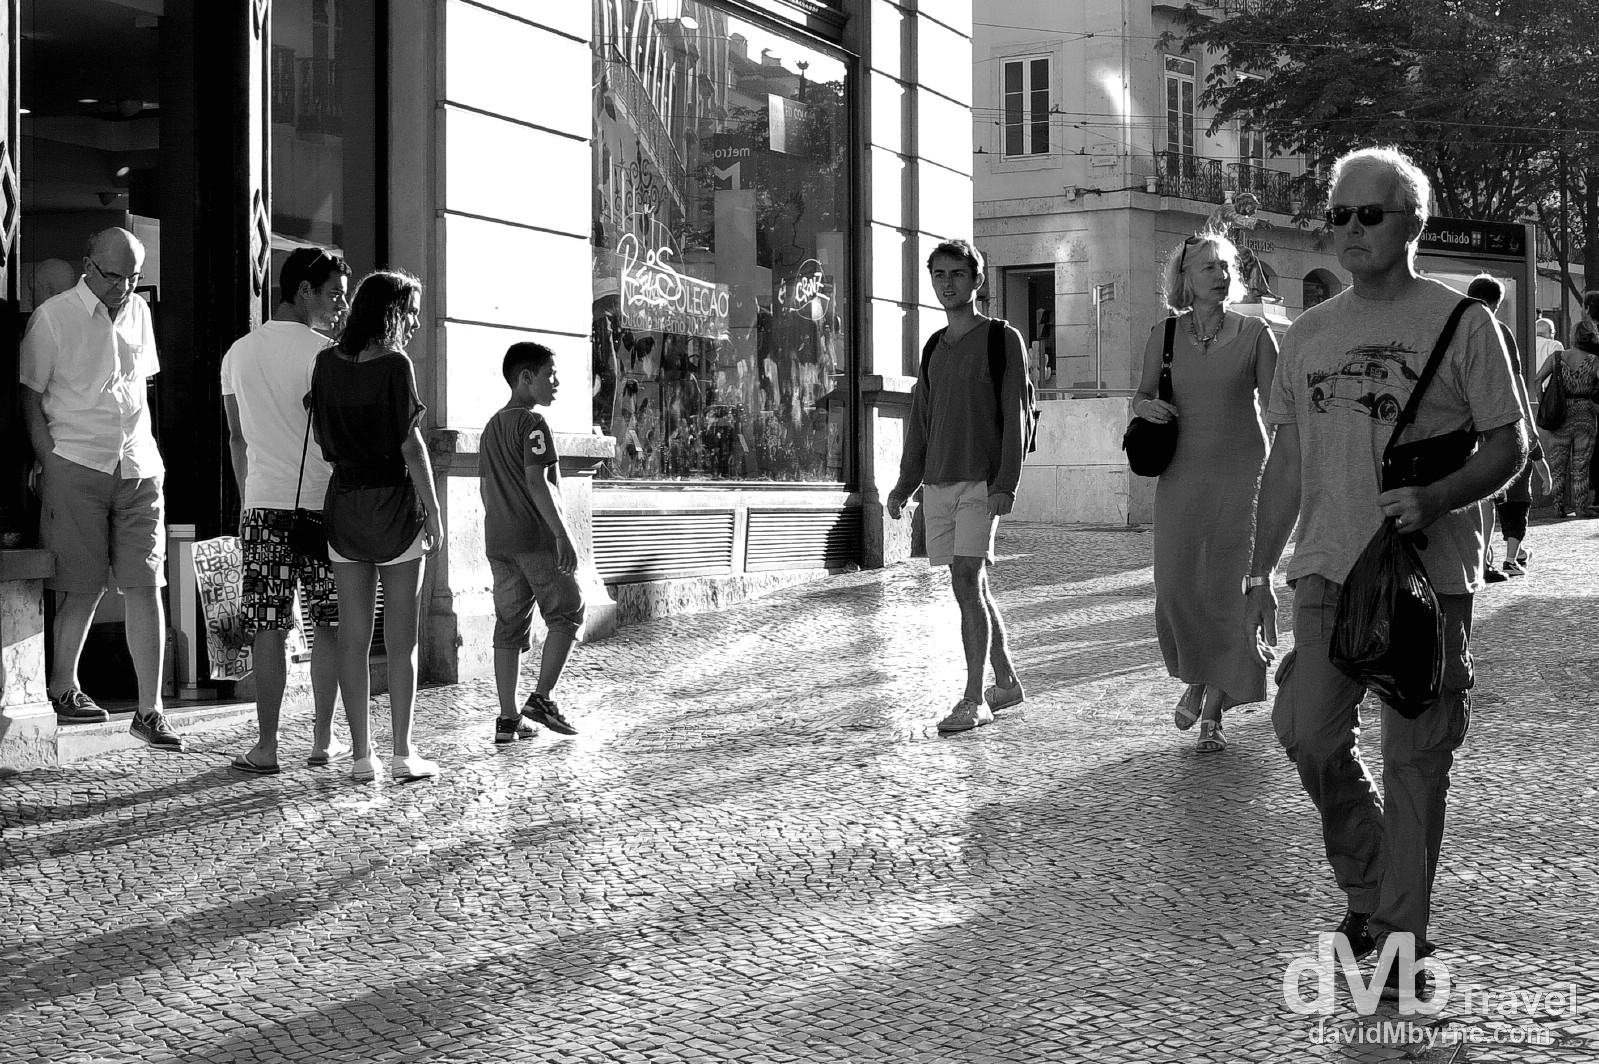 Sunset shadows on Rua Garrett leading to Largo do Chiada, Lisbon, Portugal. August 26th 2013.